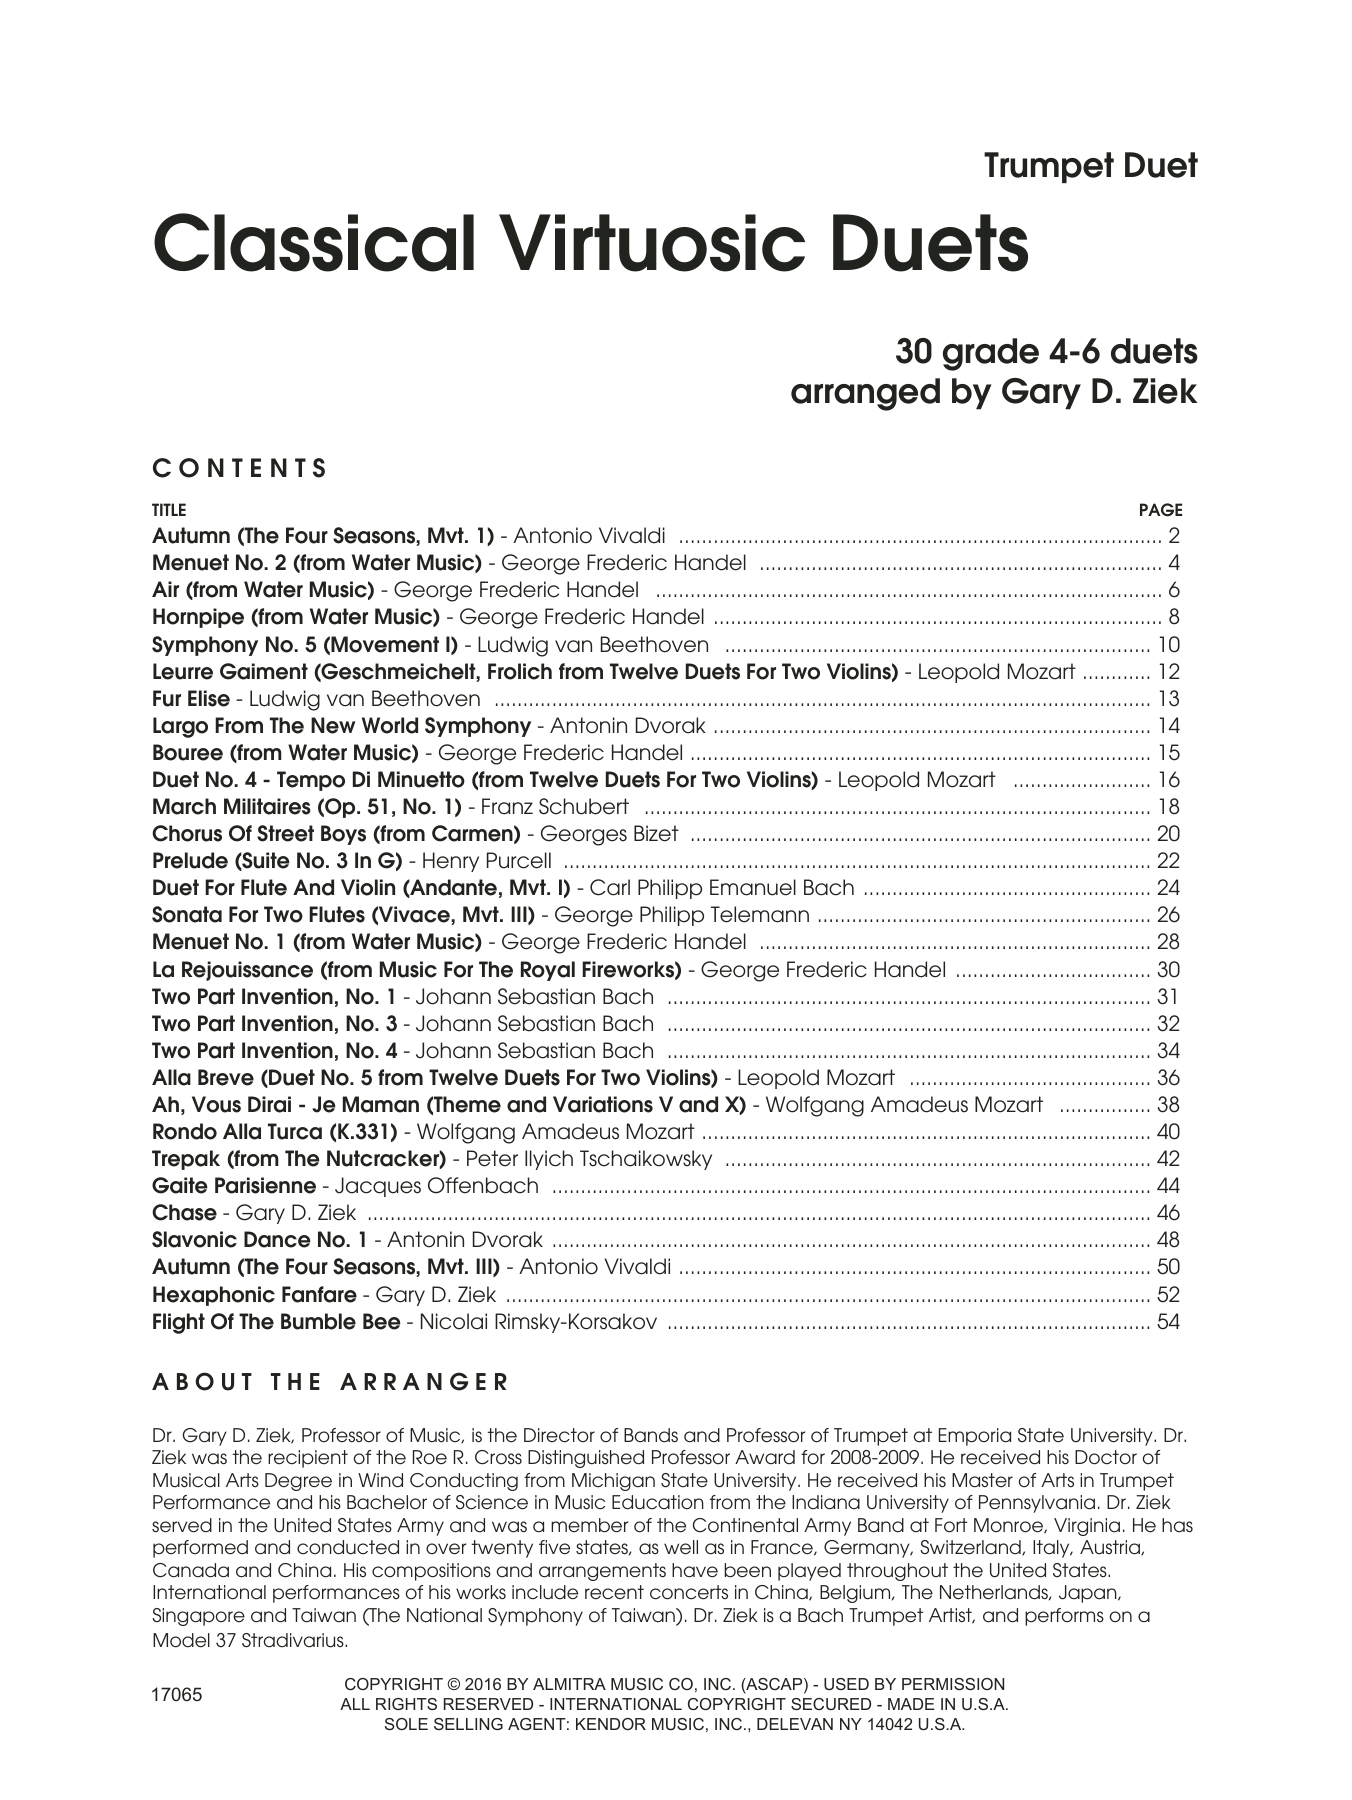 Gary Ziek Classic Virtuosic Duets (30 Grade 4-6 Duets) sheet music notes and chords